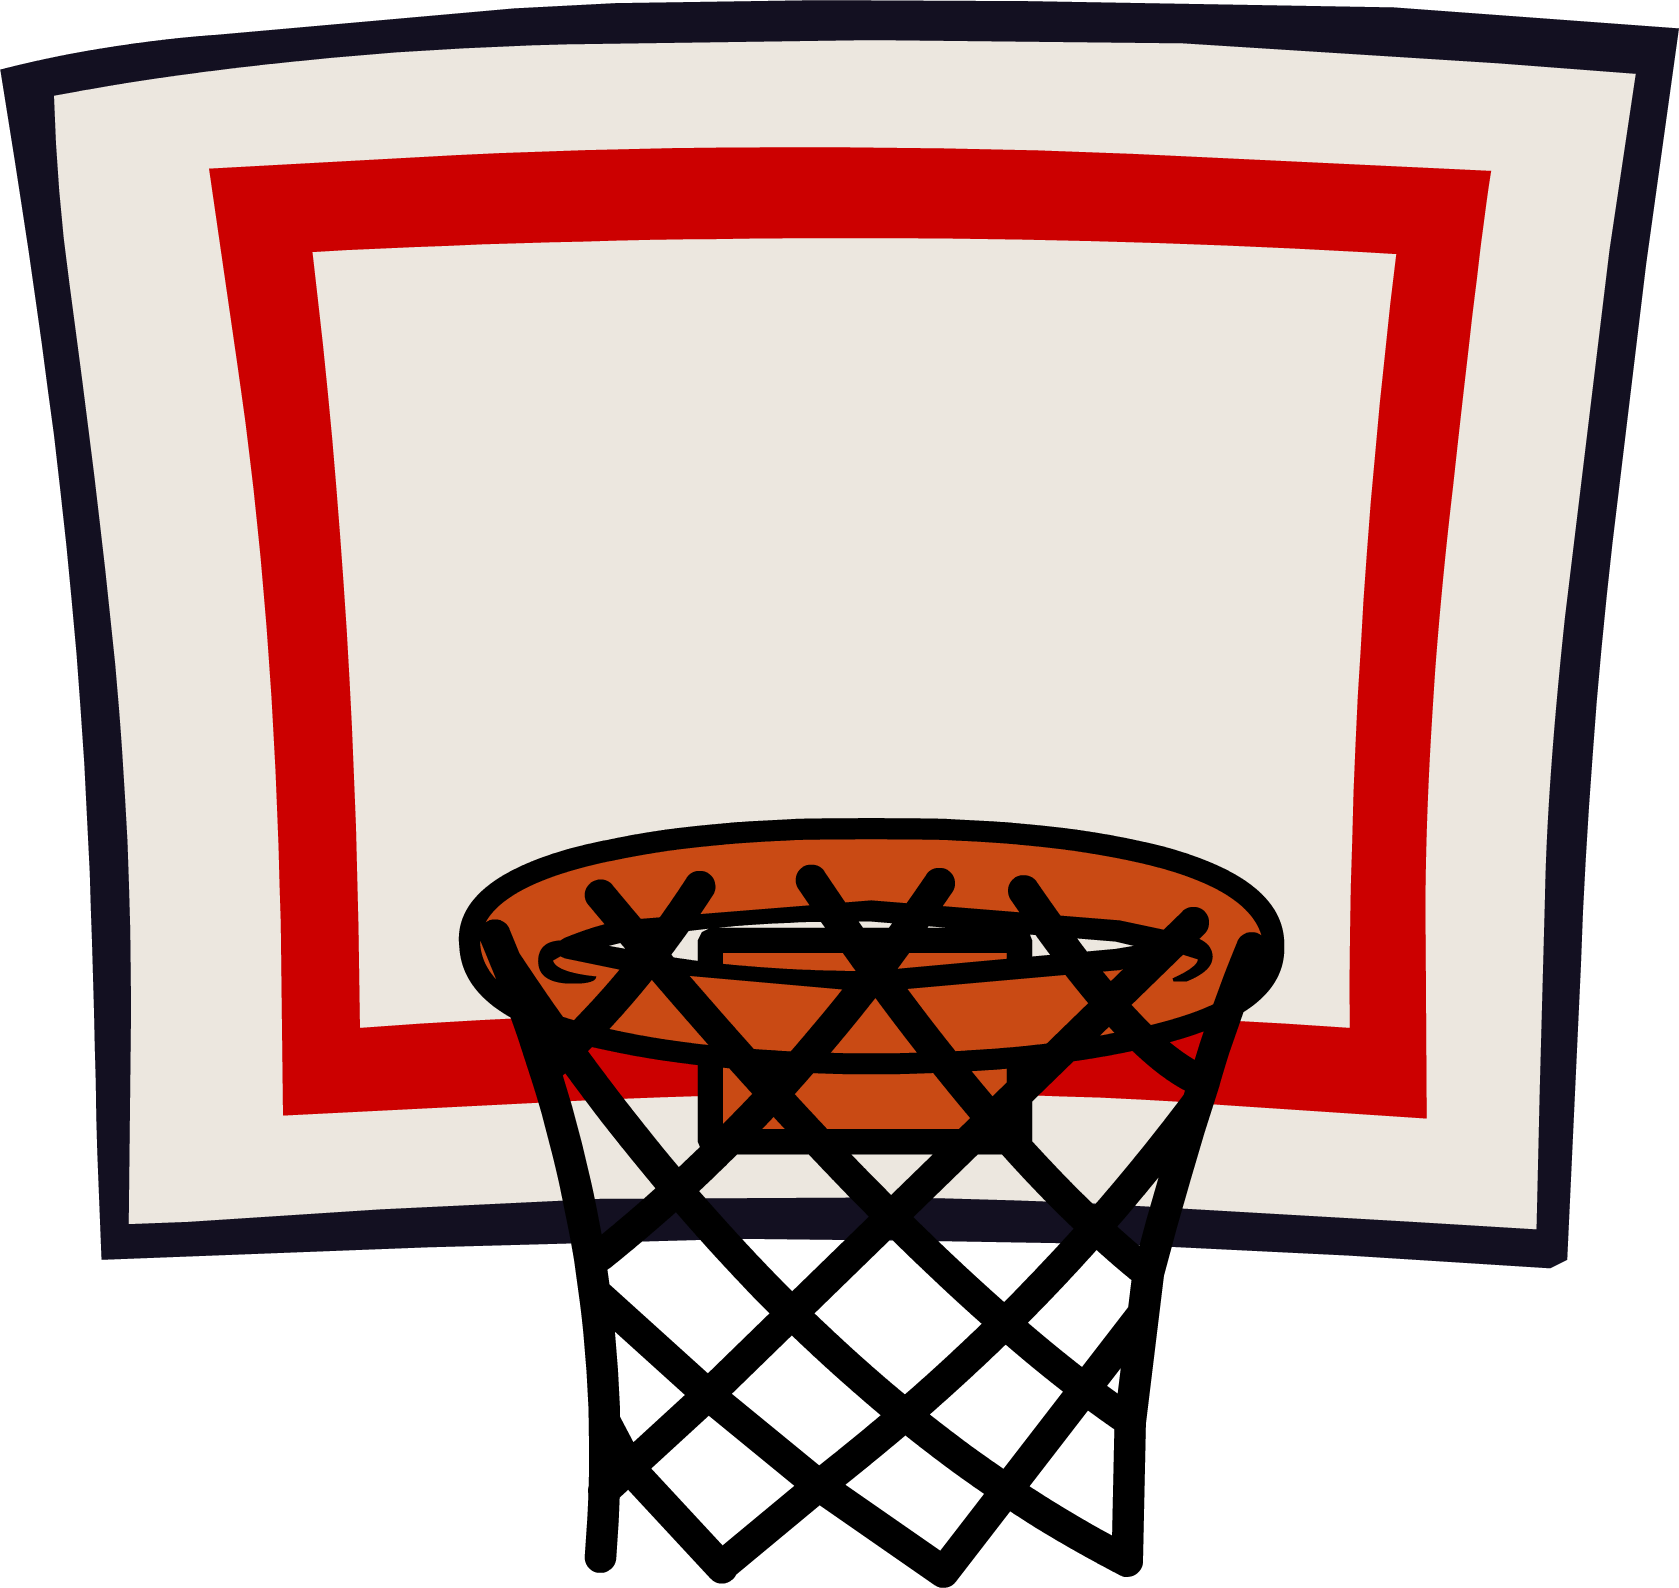 Basketball net clipart image graphic transparent download Free Basketball Hoop Cliparts, Download Free Clip Art, Free Clip Art ... graphic transparent download